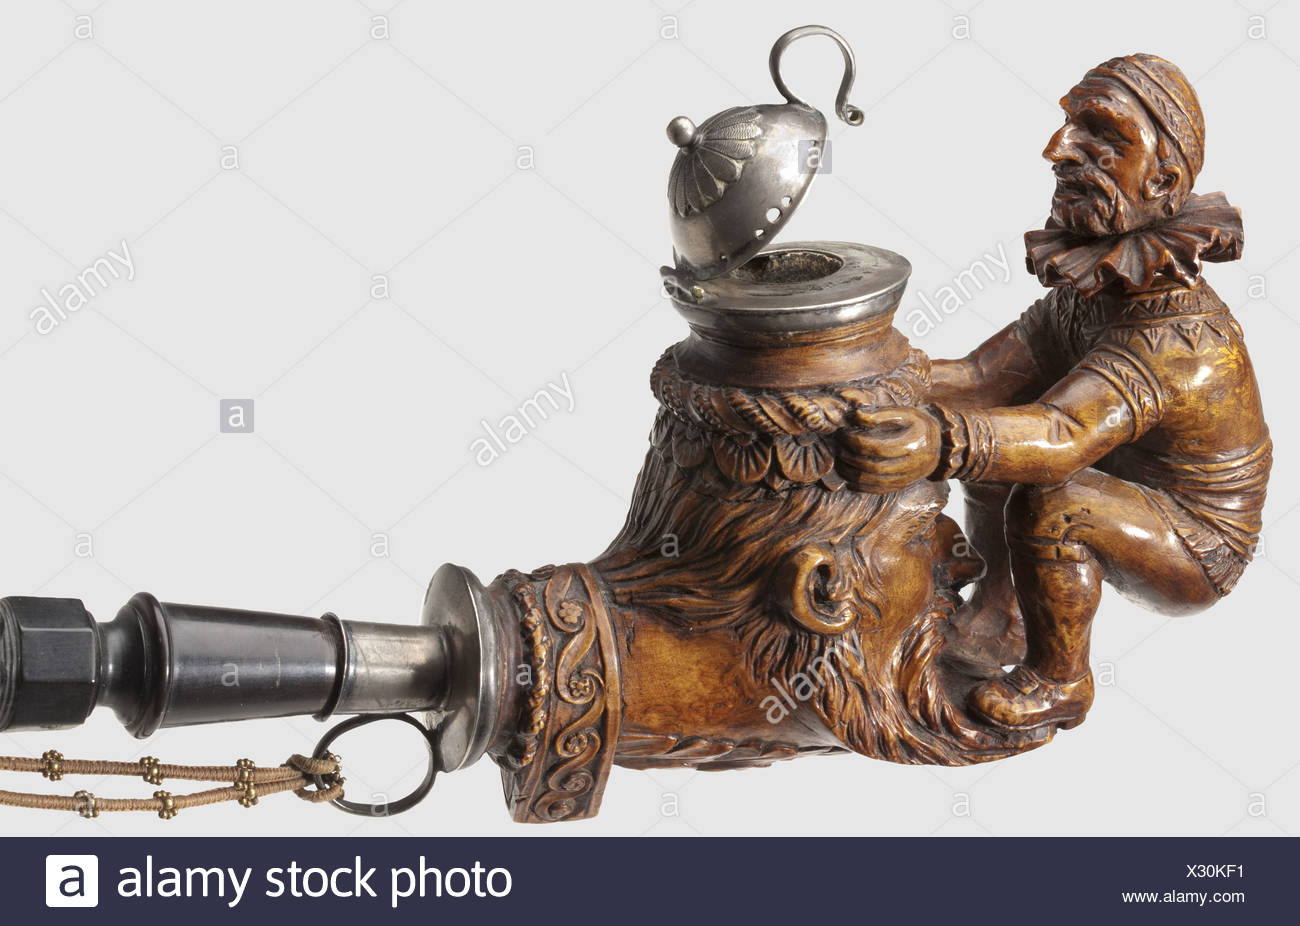 A German Pipe 2nd Half Of The 19th Century A Root Wood Pipe Bowl Made From Finely Grained Root Wood With A Carved Figure And A One Piece Match Holder Carved In The